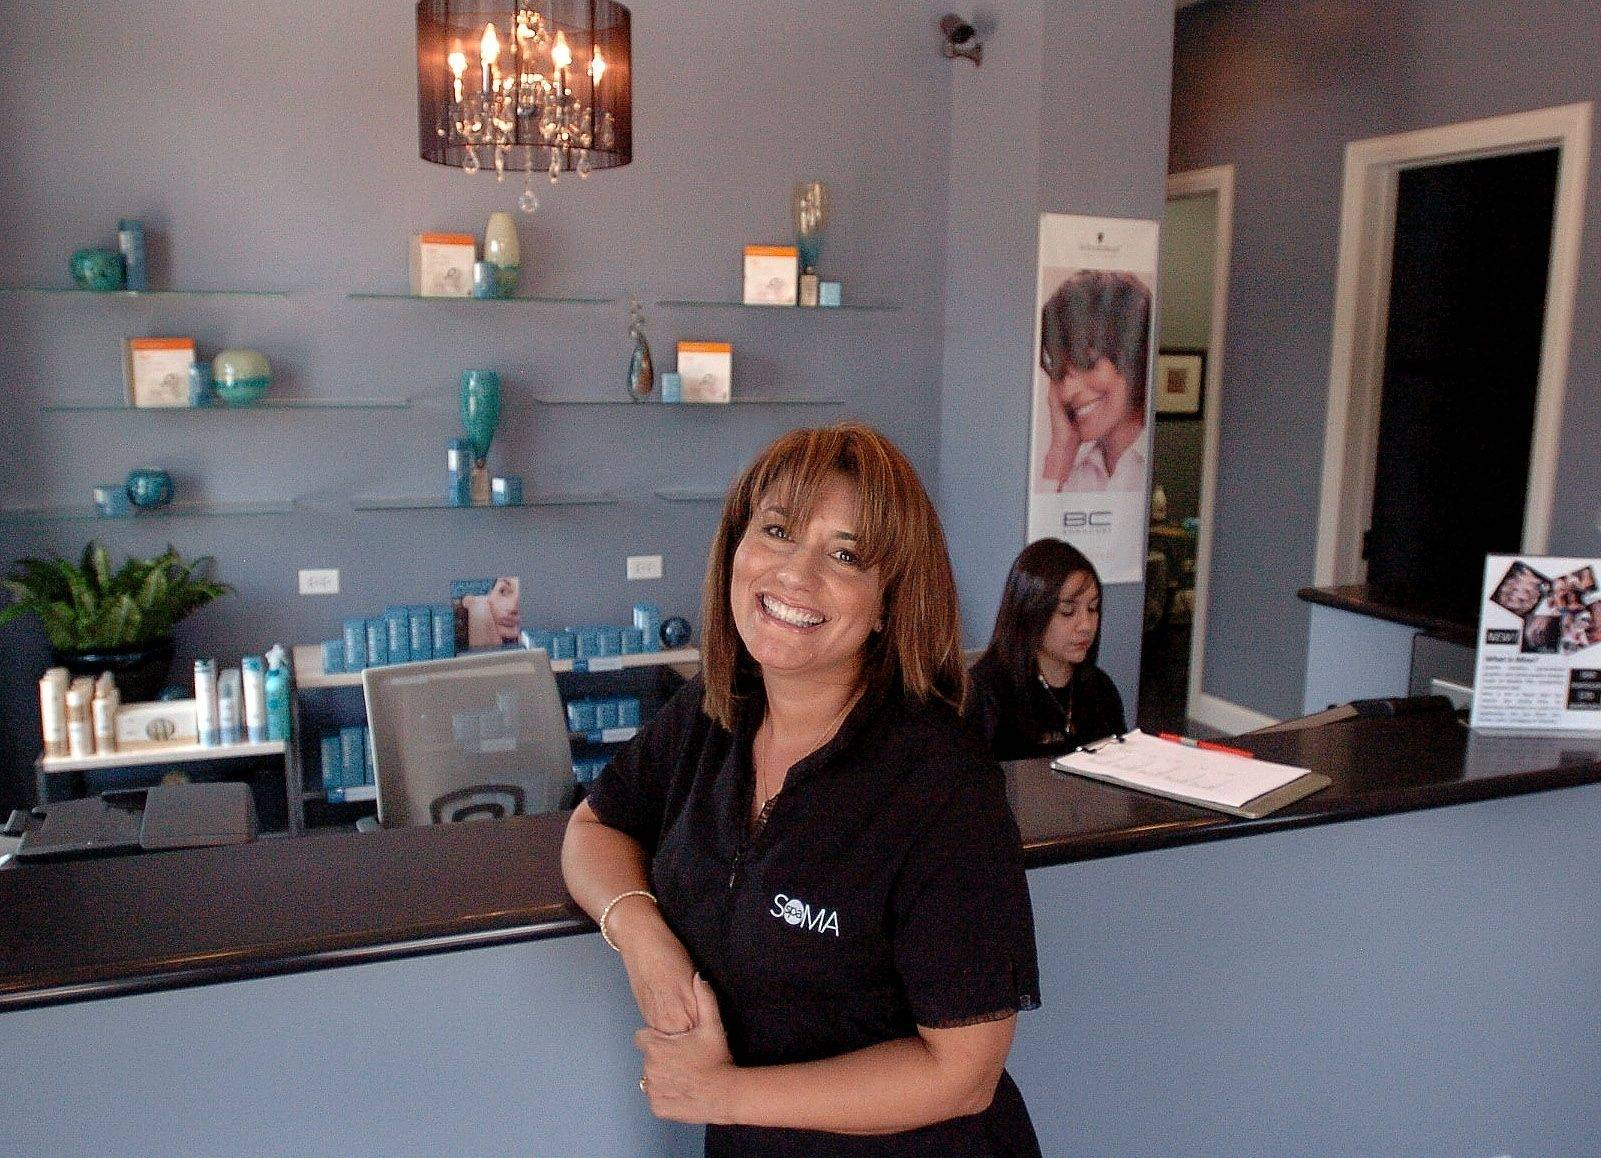 Helen Kakos, owner of the new Spa Soma salon in Lake Zurich, offers an array of trendy services from Brazilian blowouts to Minx manicures.